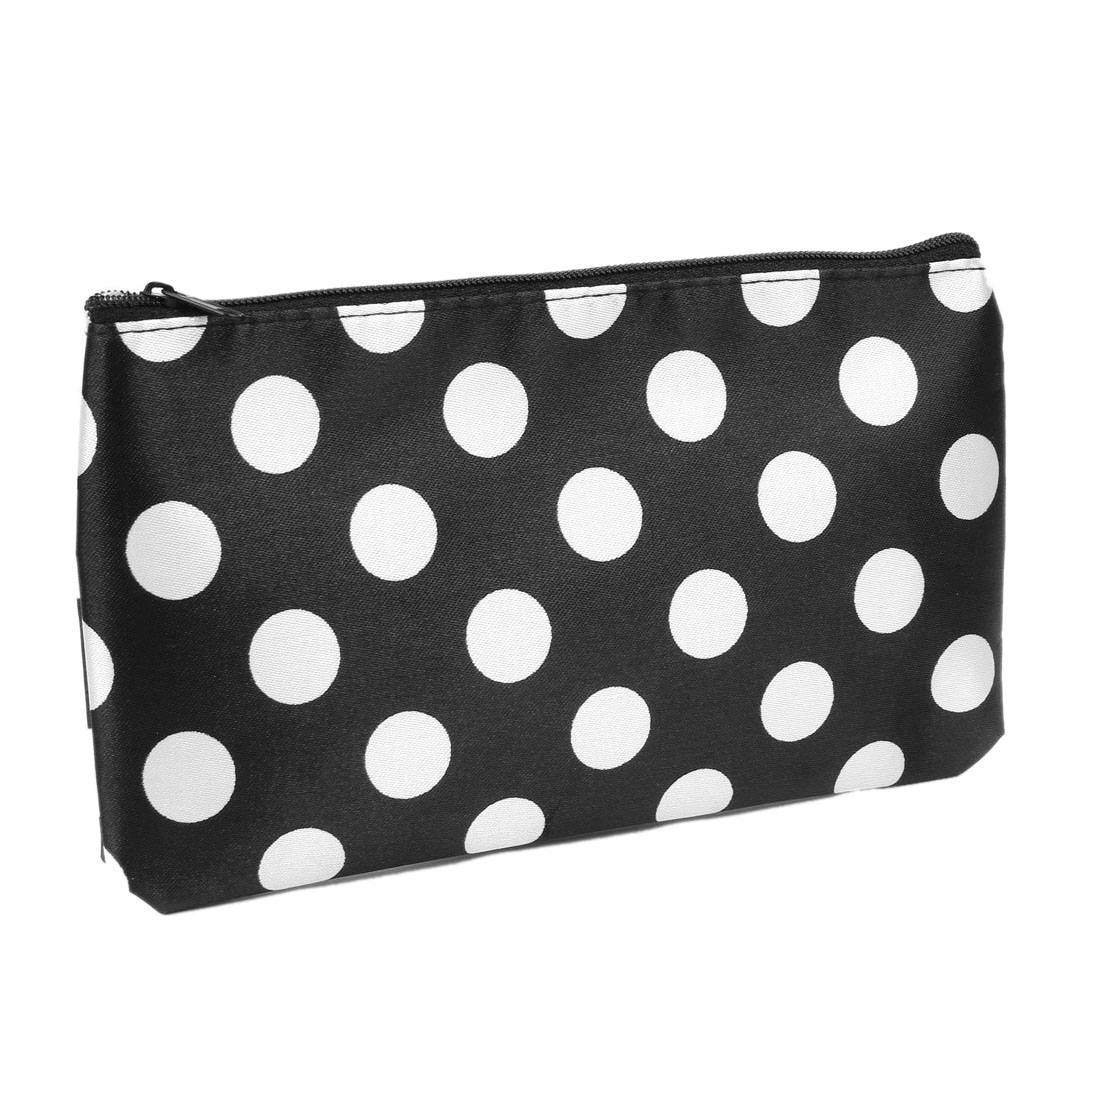 цена White Polka Dots Print Polyester Makeup Bag make up organizer Holder Black For Women в интернет-магазинах